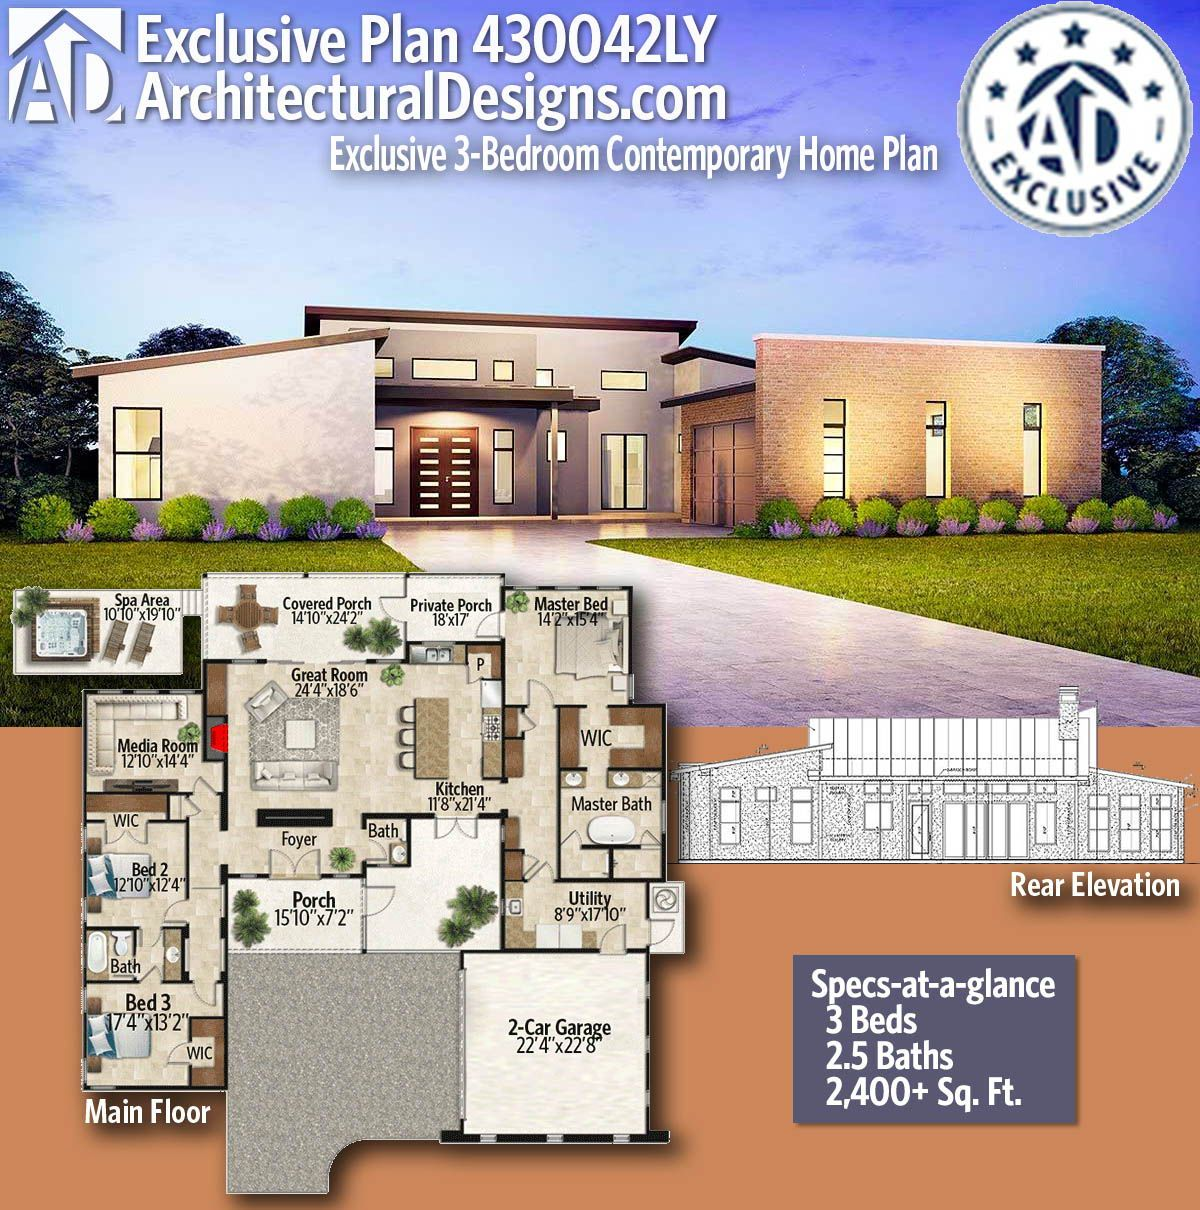 Plan 430042ly Exclusive 3 Bedroom Contemporary Home Plan Contemporary House Plans House Plans Small House Design Plans